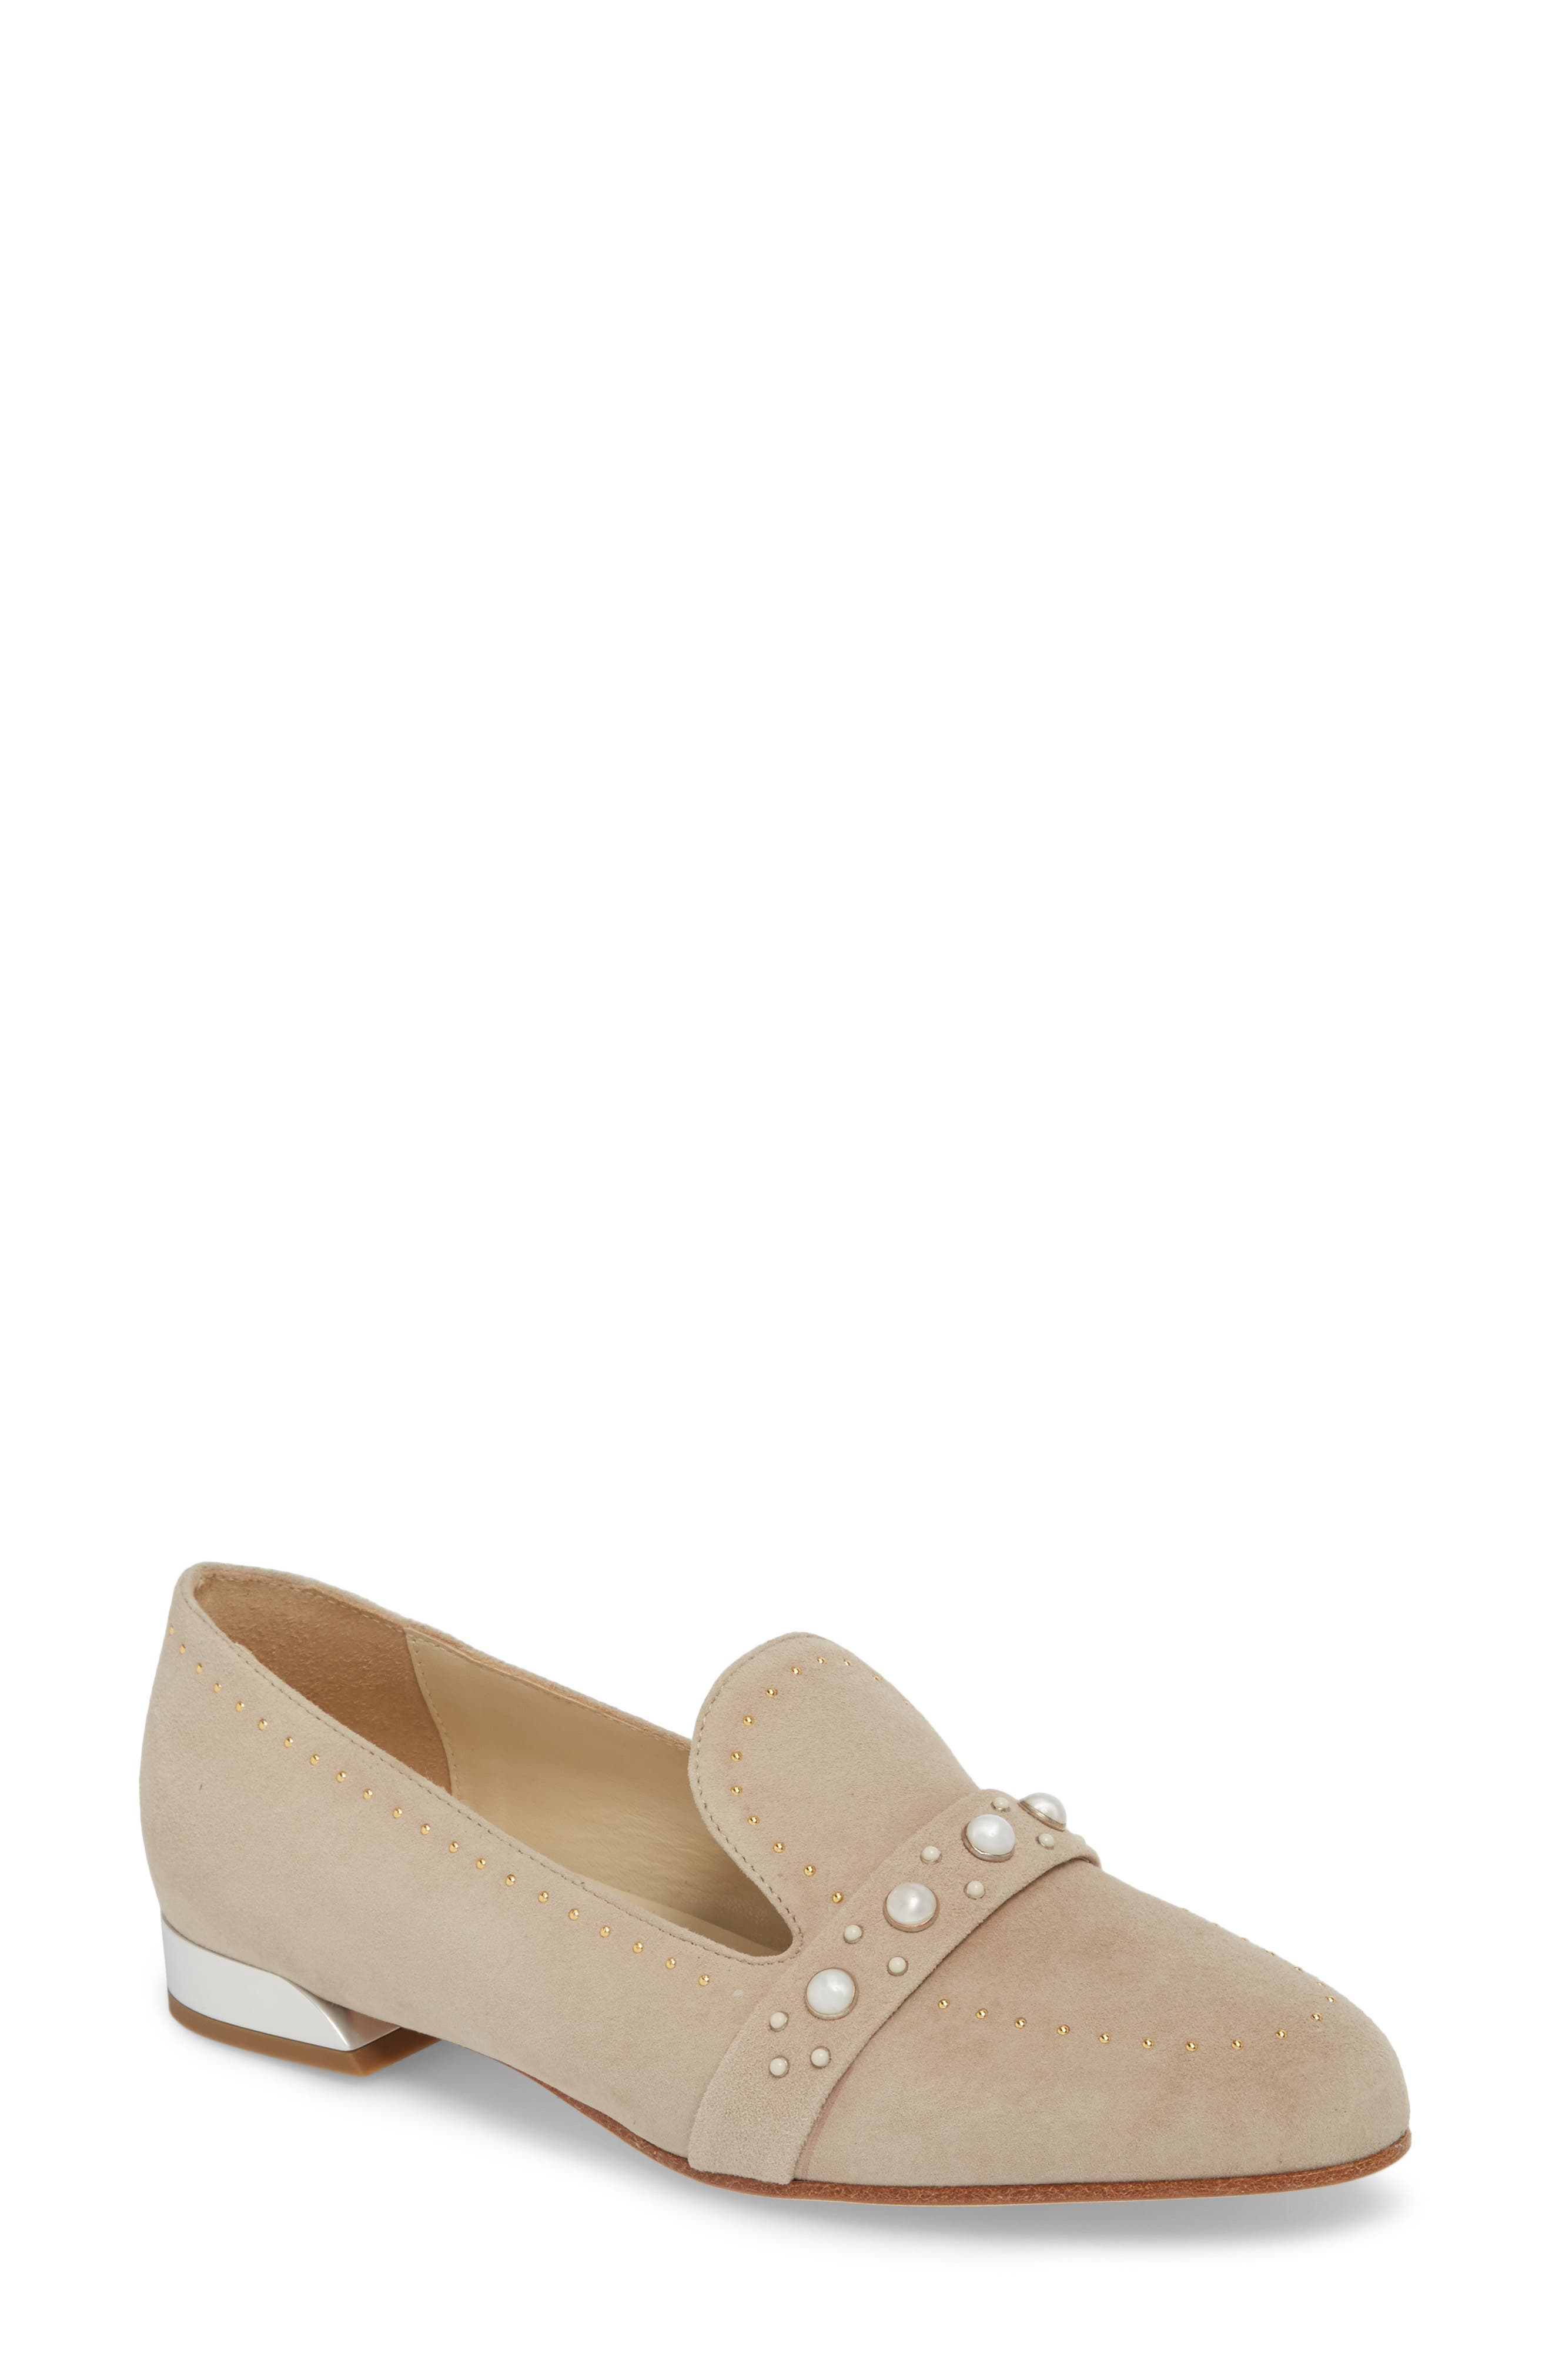 Butter Tamra Embellished Loafer,                             Main thumbnail 1, color,                             Pebble Suede